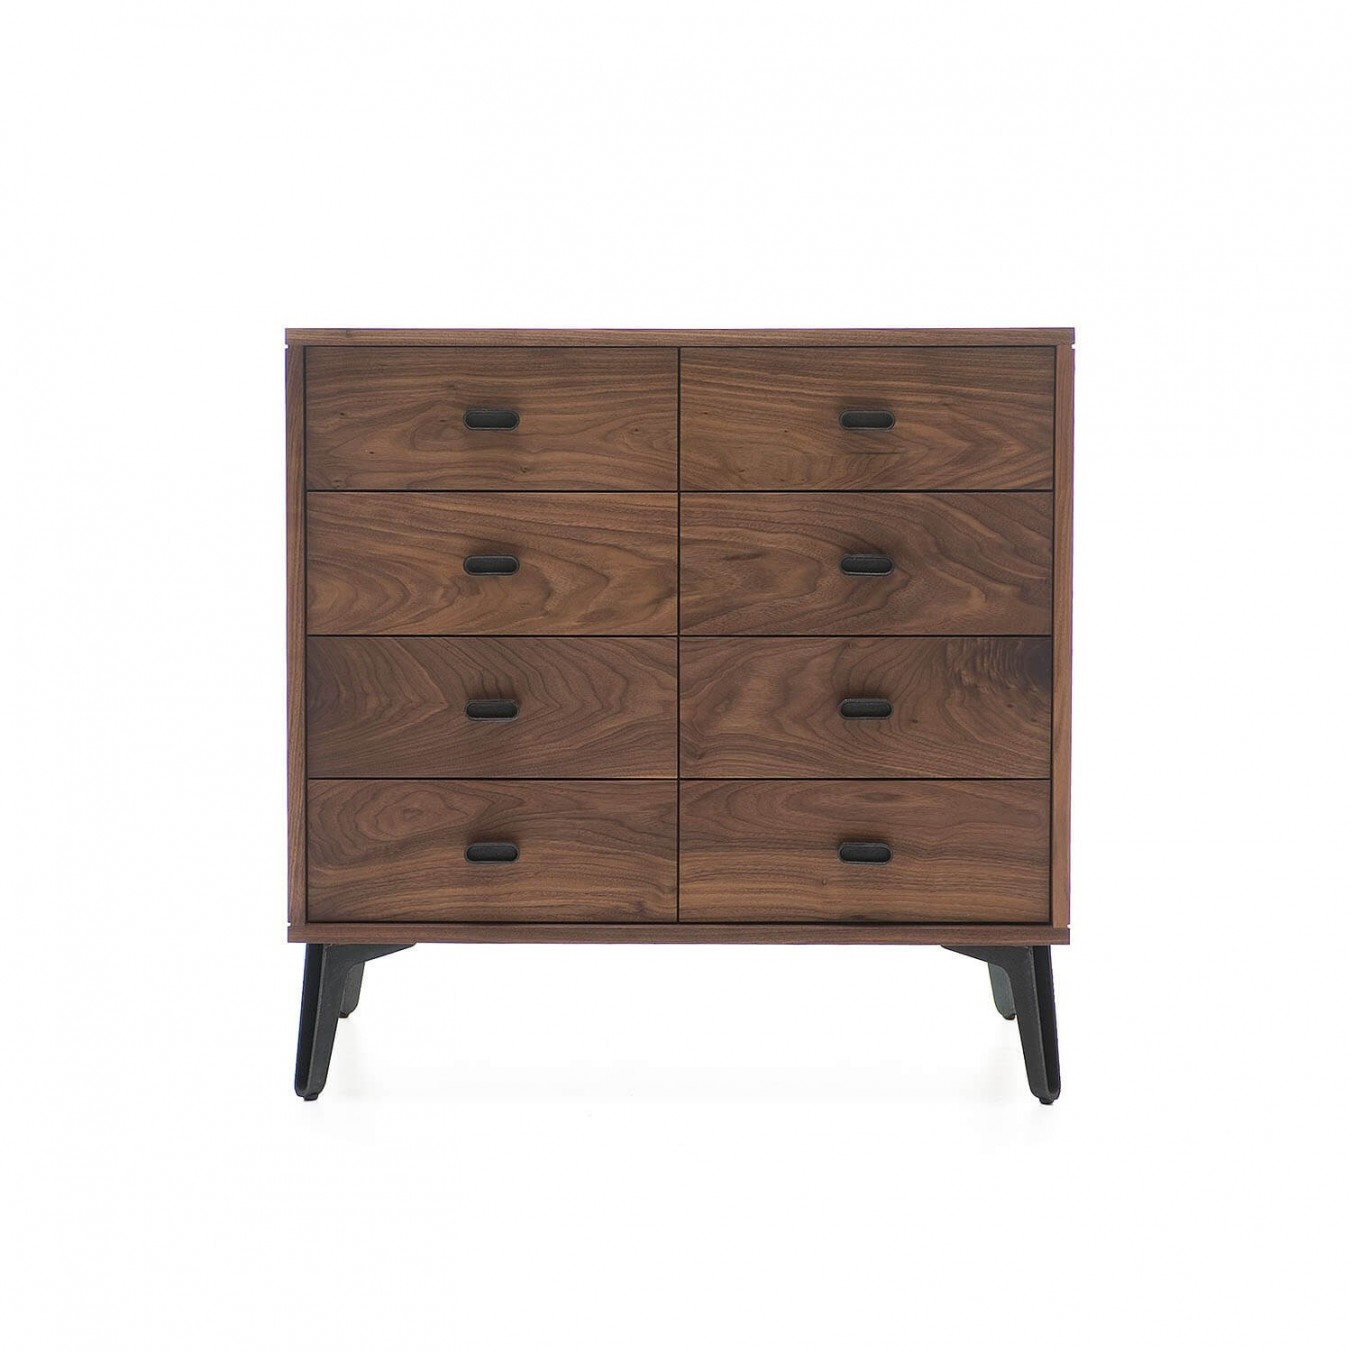 MCQUEEN 8-DRAWER CHEST